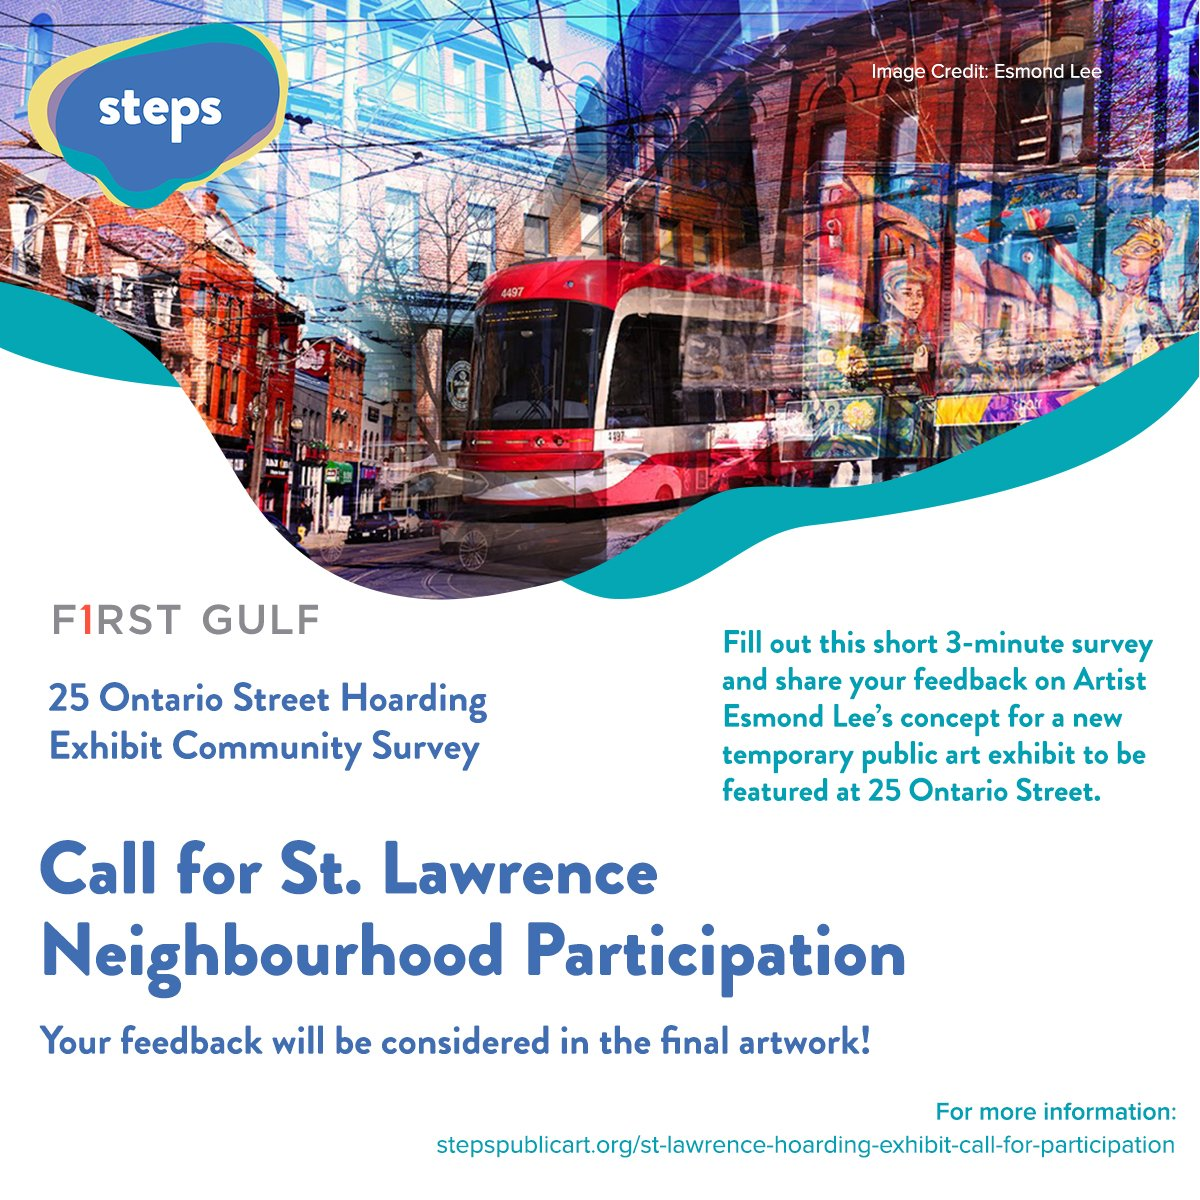 Call for St. Lawrence Neighbourhood participation promotional image